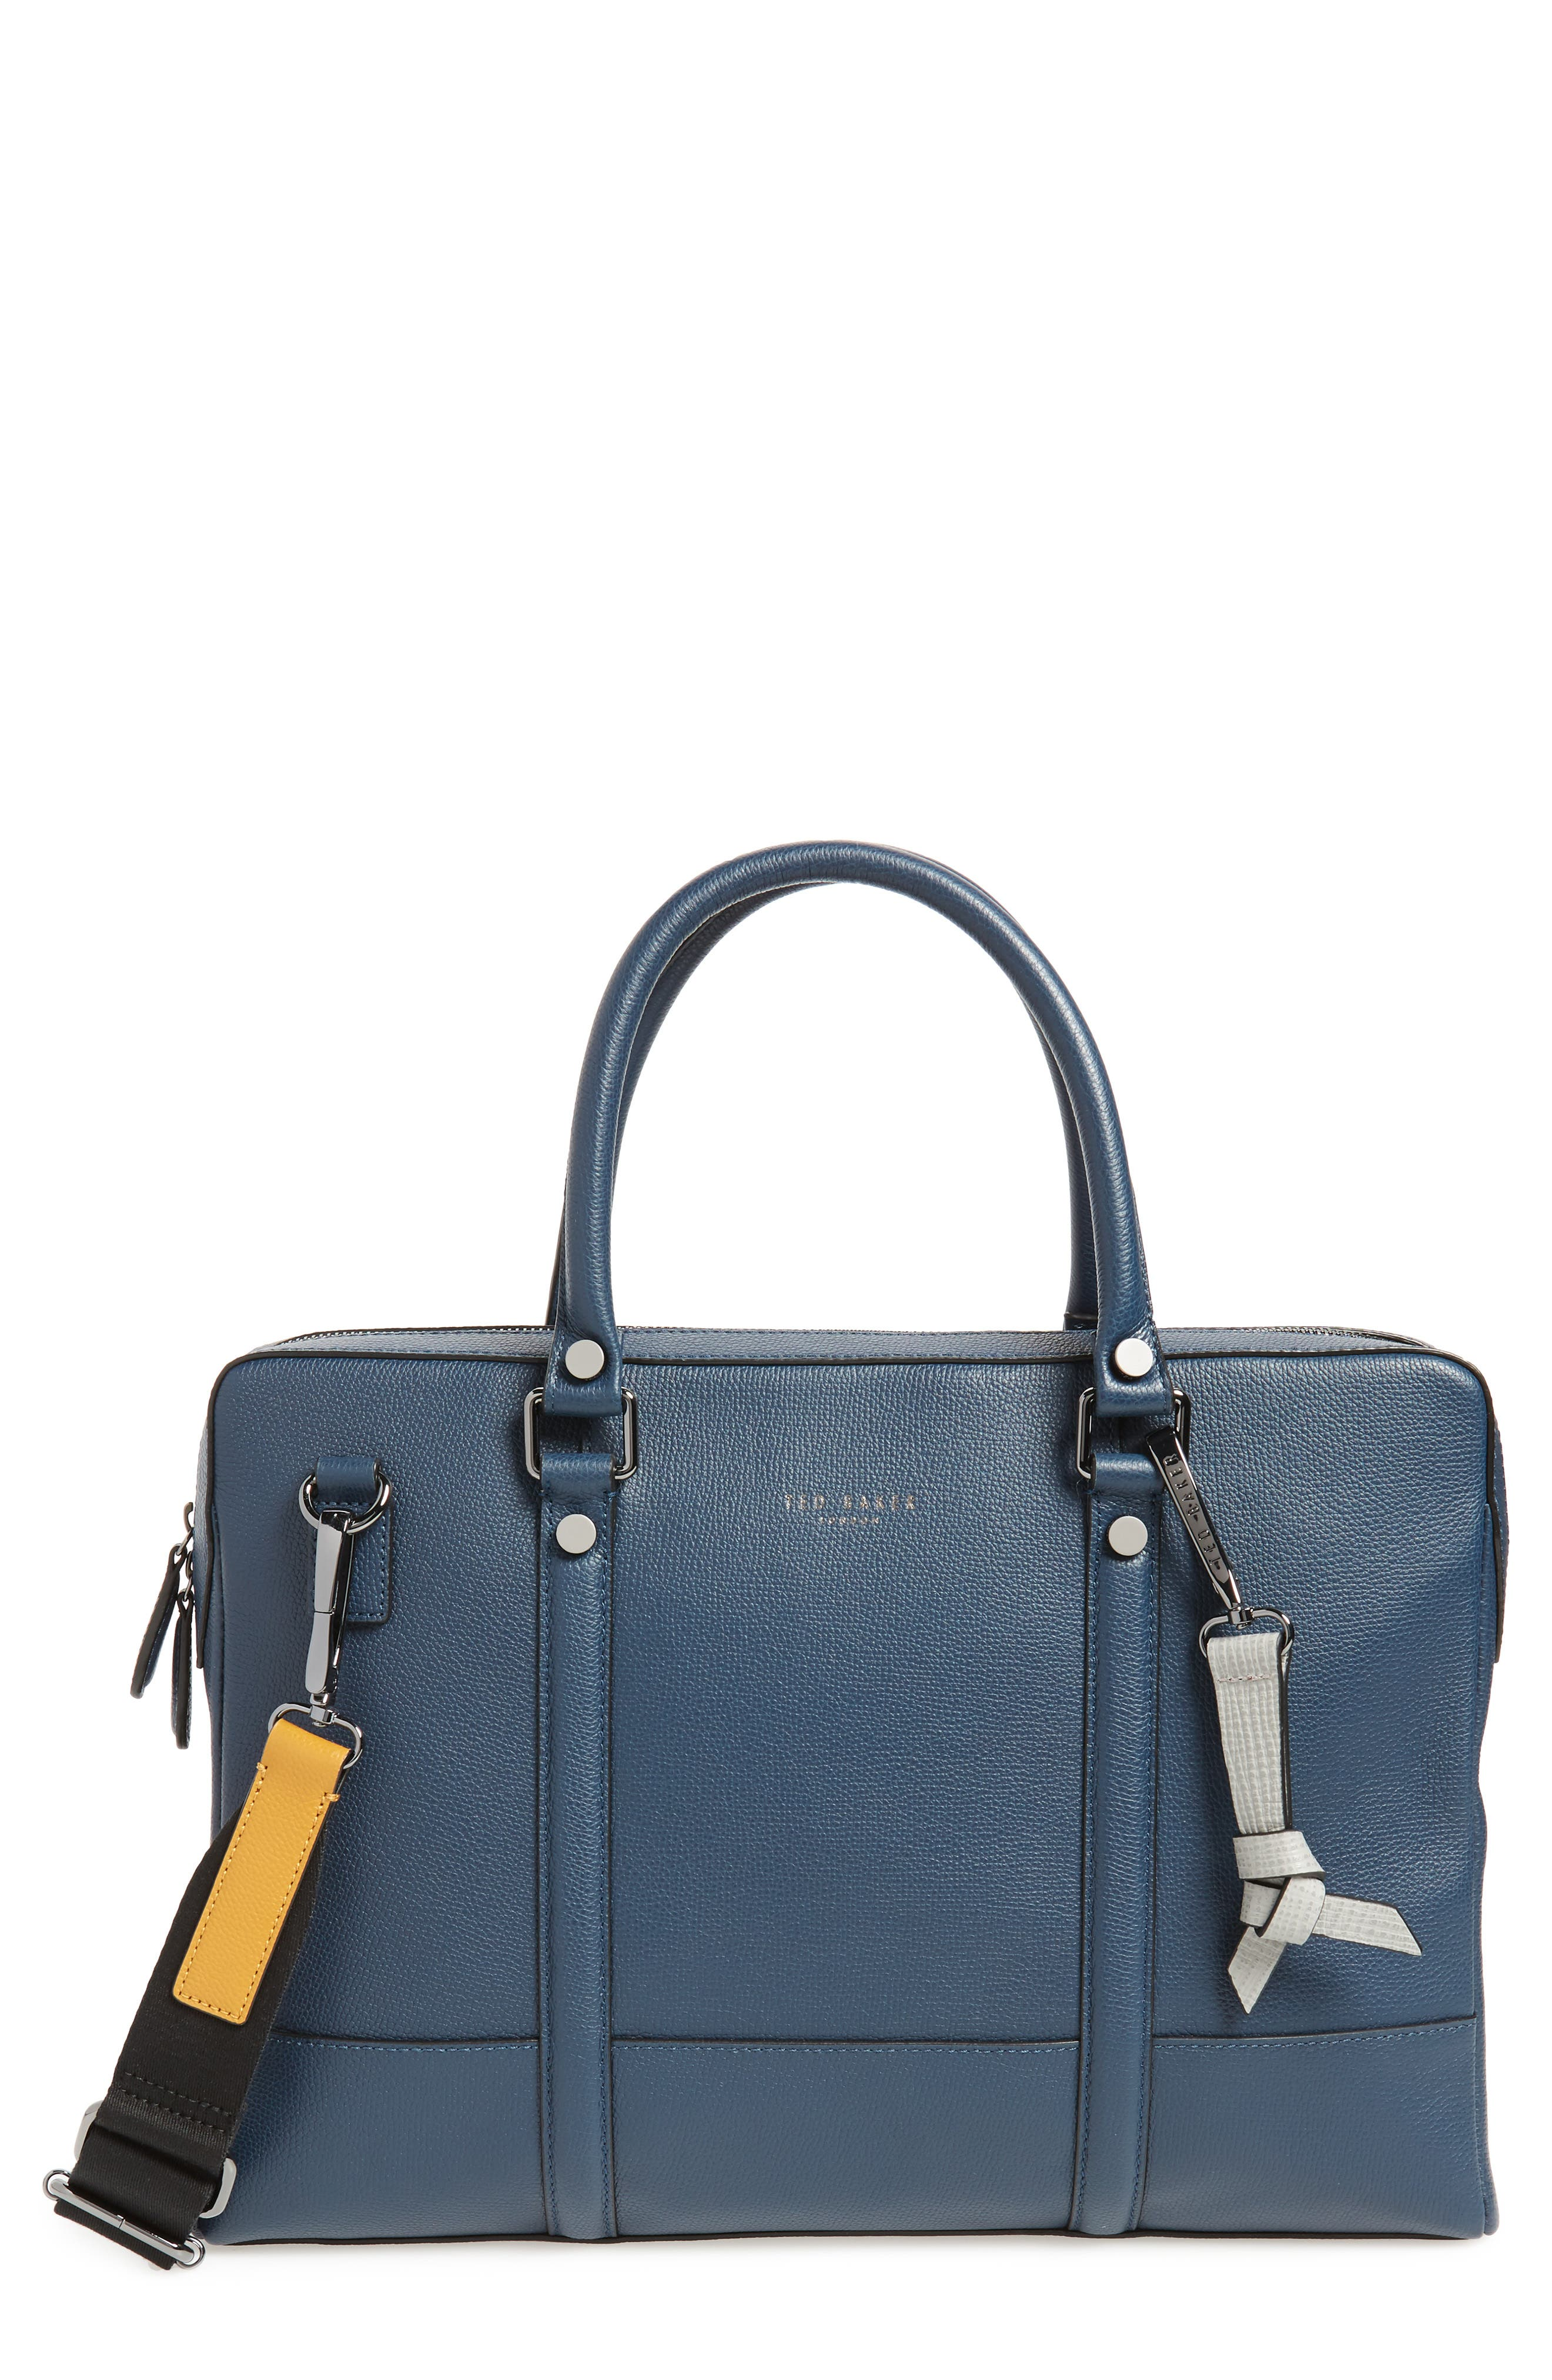 AWOL Leather Document Bag,                         Main,                         color, NAVY